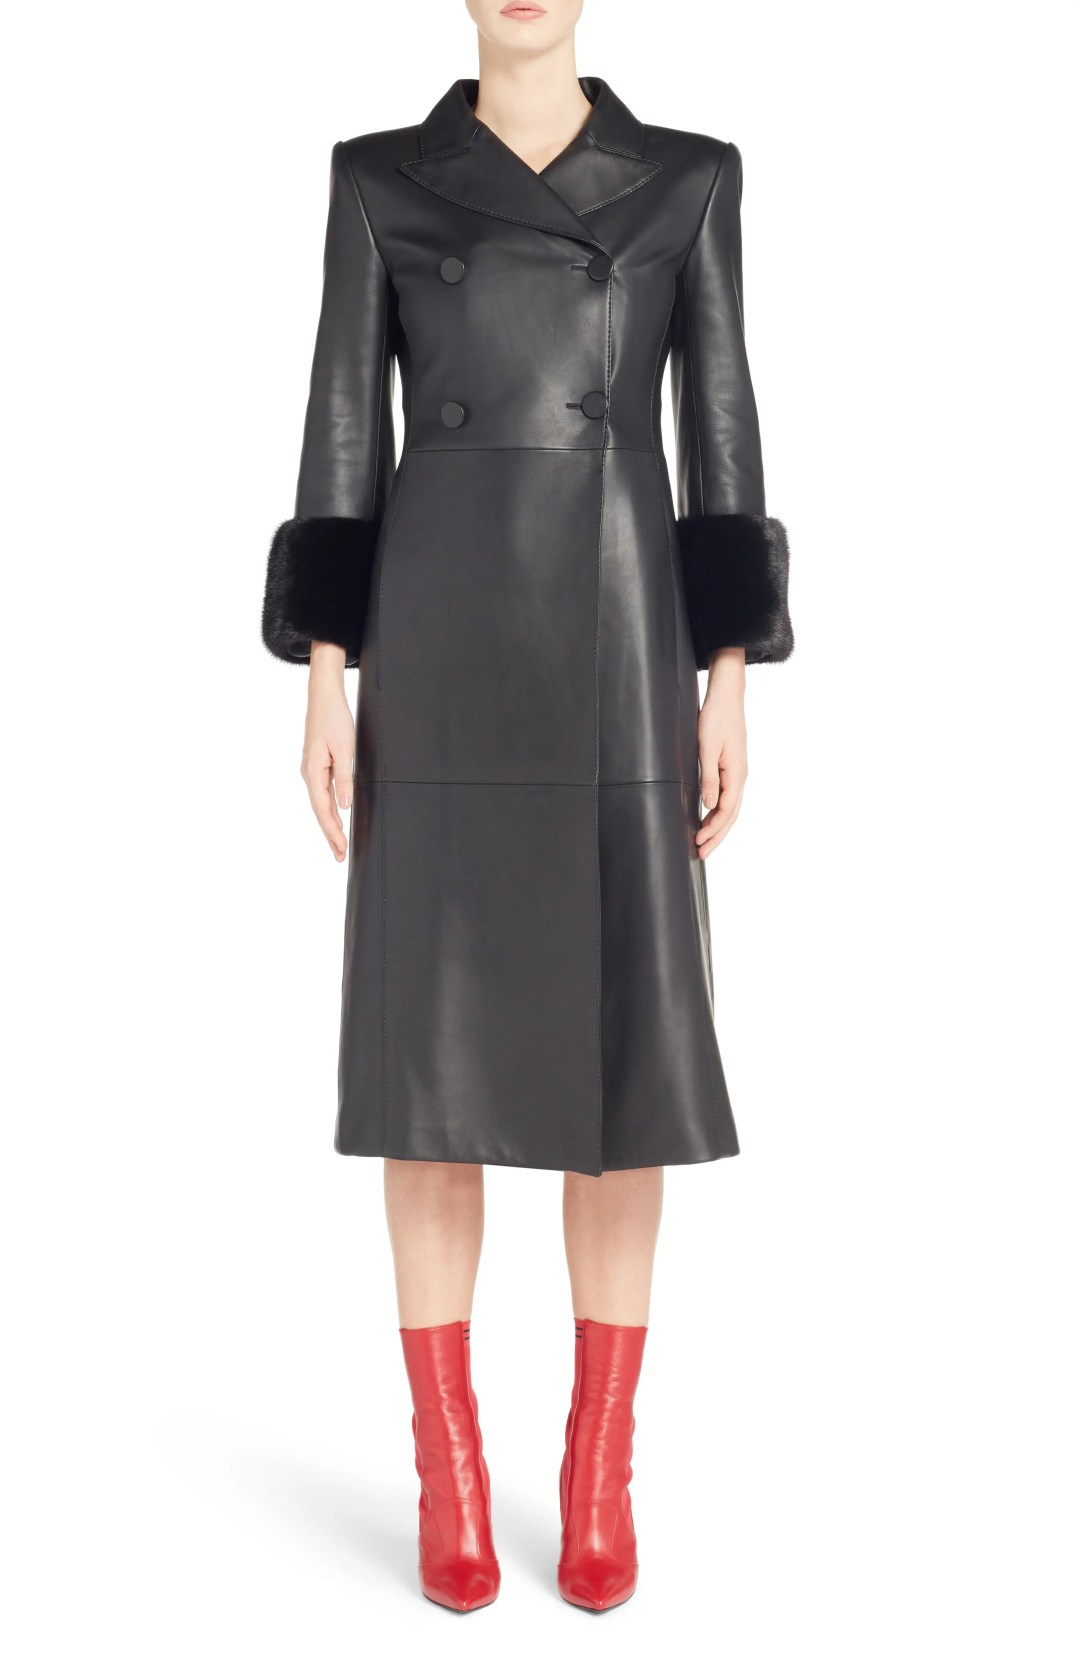 eded84ba1 Women's Fendi Leather Double Breasted Coat With Genuine Mink Fur Trim, Size  4 US / 40 IT – Black – NORDSTROM.com – $6,500.00 ...